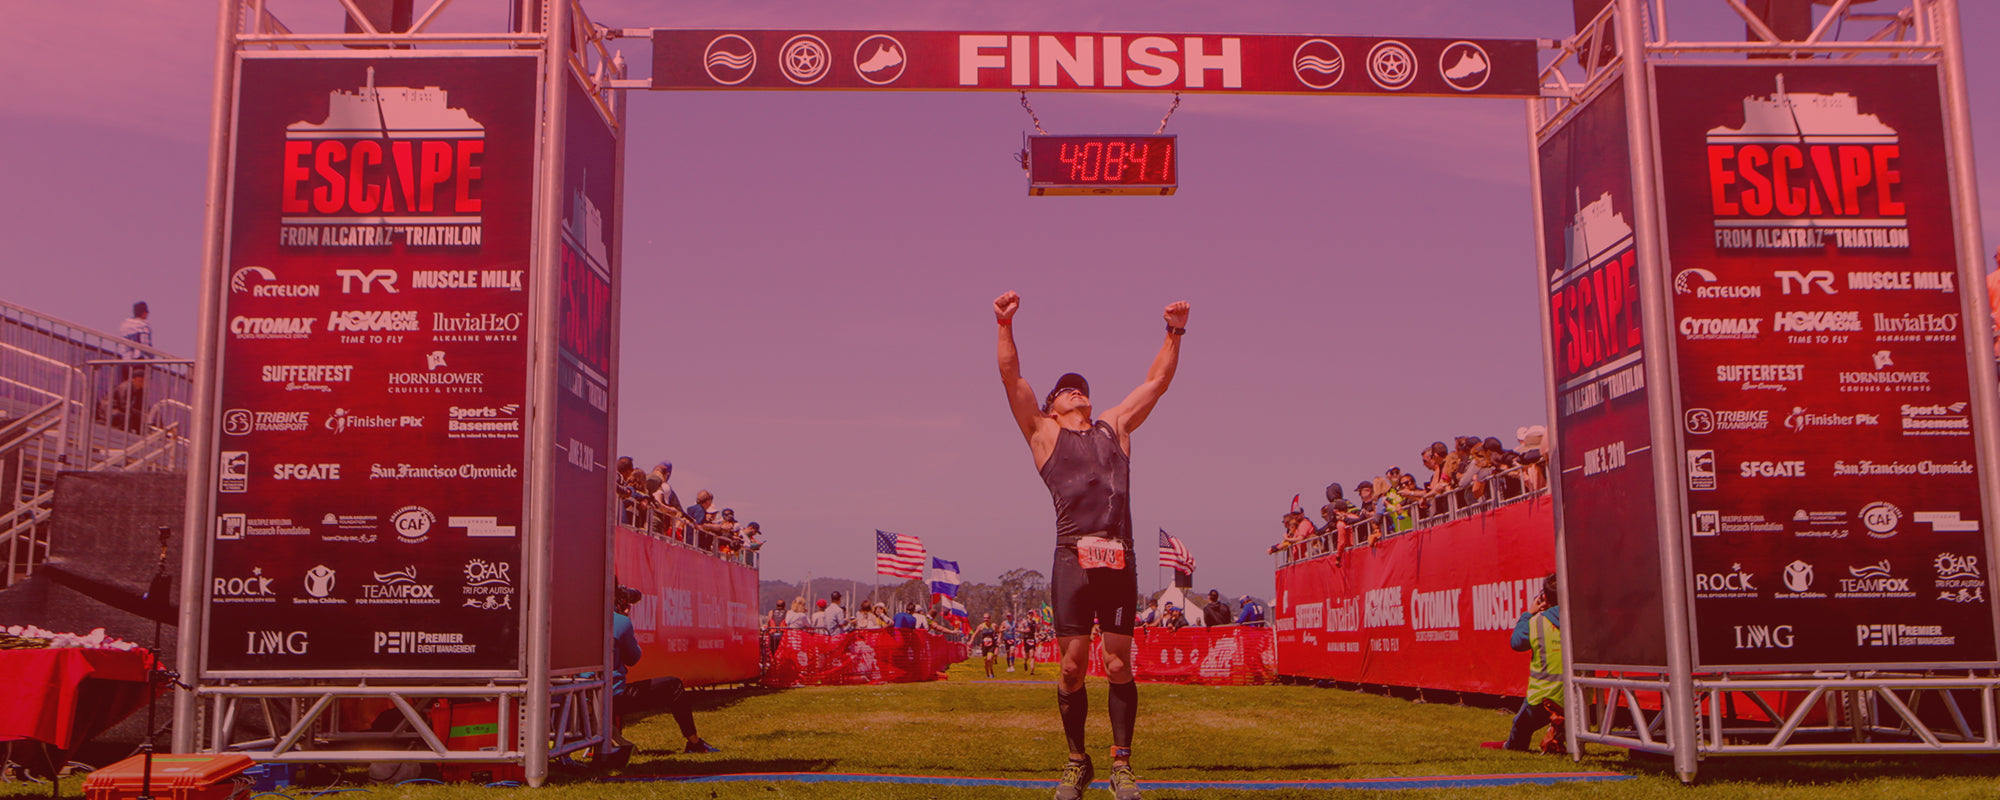 The Peek: Behind-the-Scenes of Escape from Alcatraz Triathlon